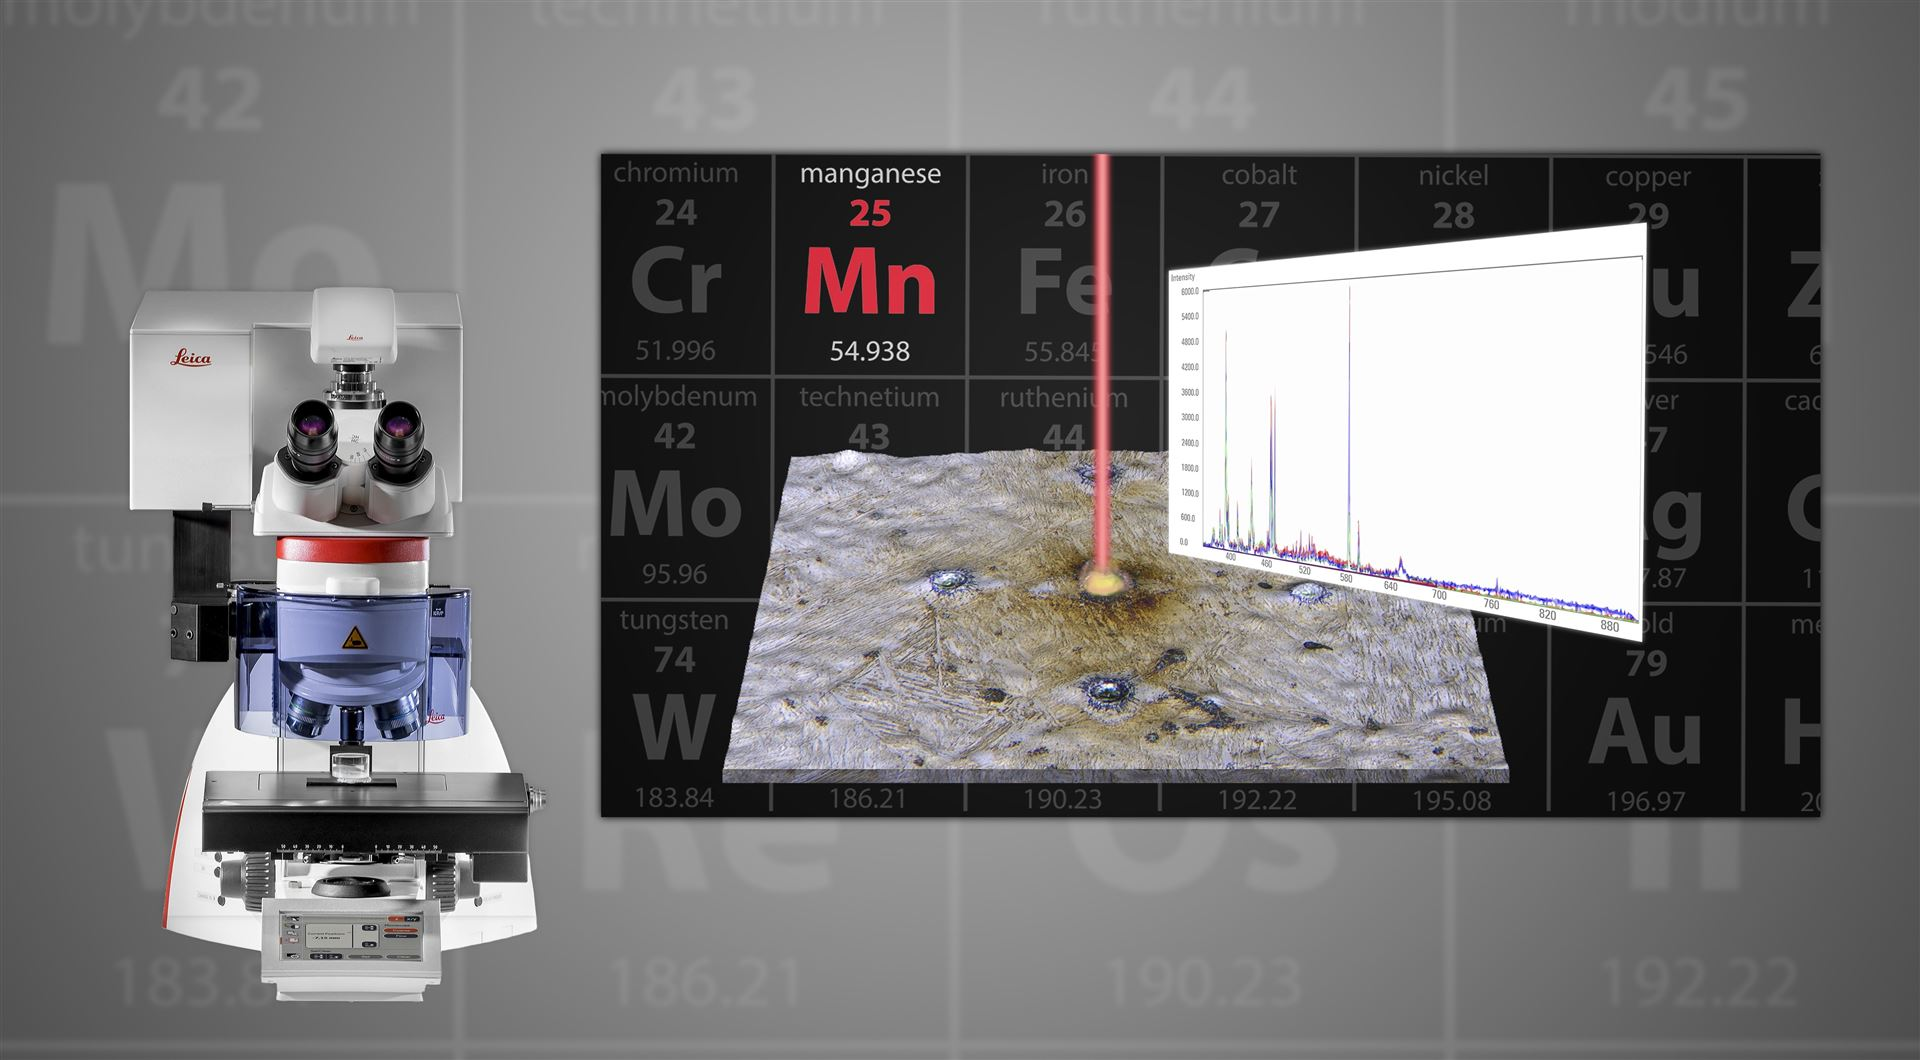 Leica LIBS offers a 2-in-1 solution for rapid, precise material analysis.